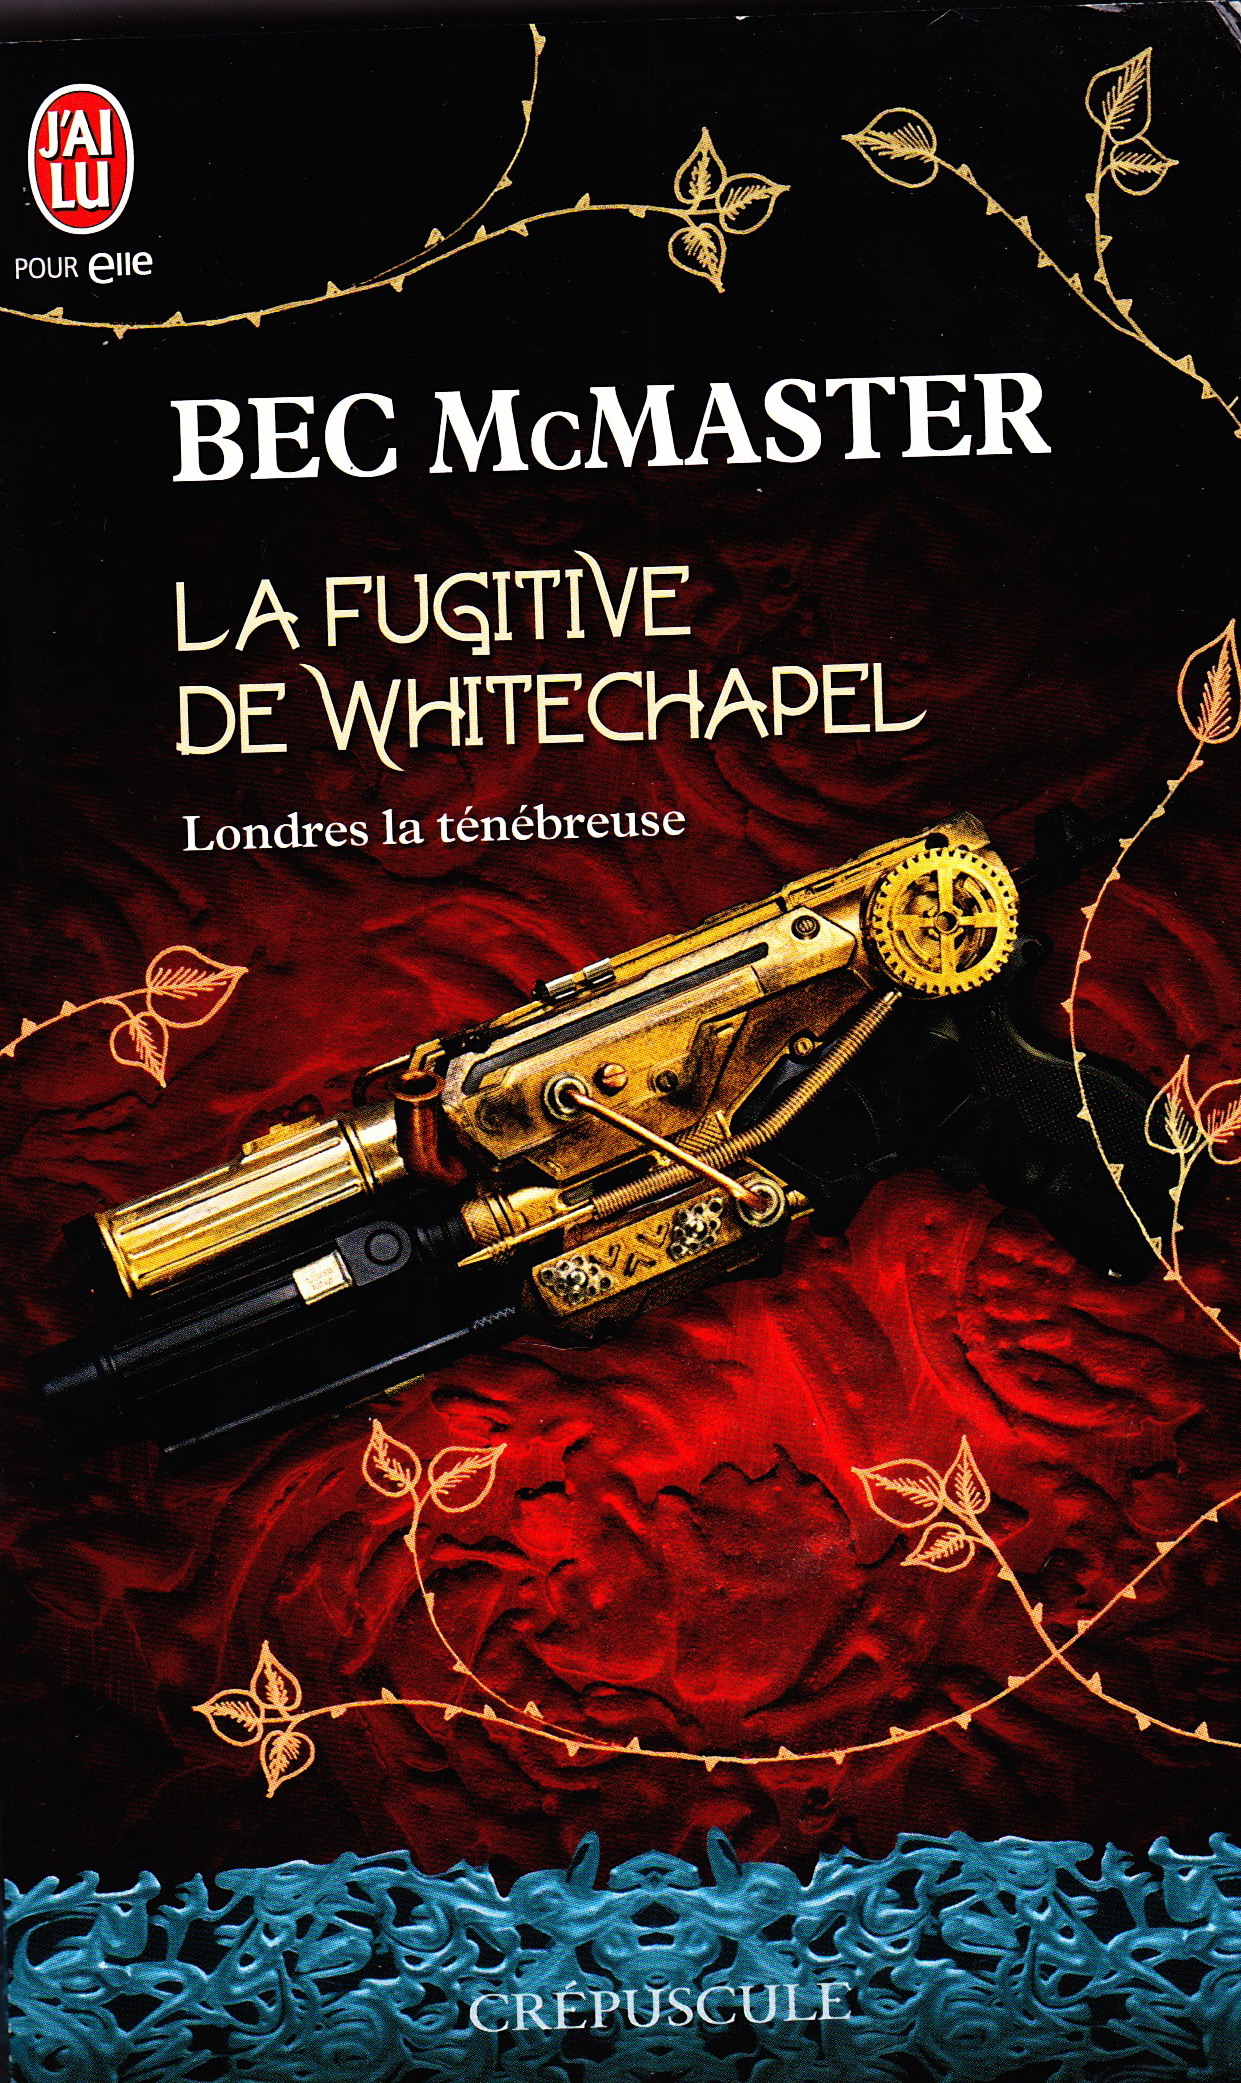 Kiss of Steel by Bec McMaster in French